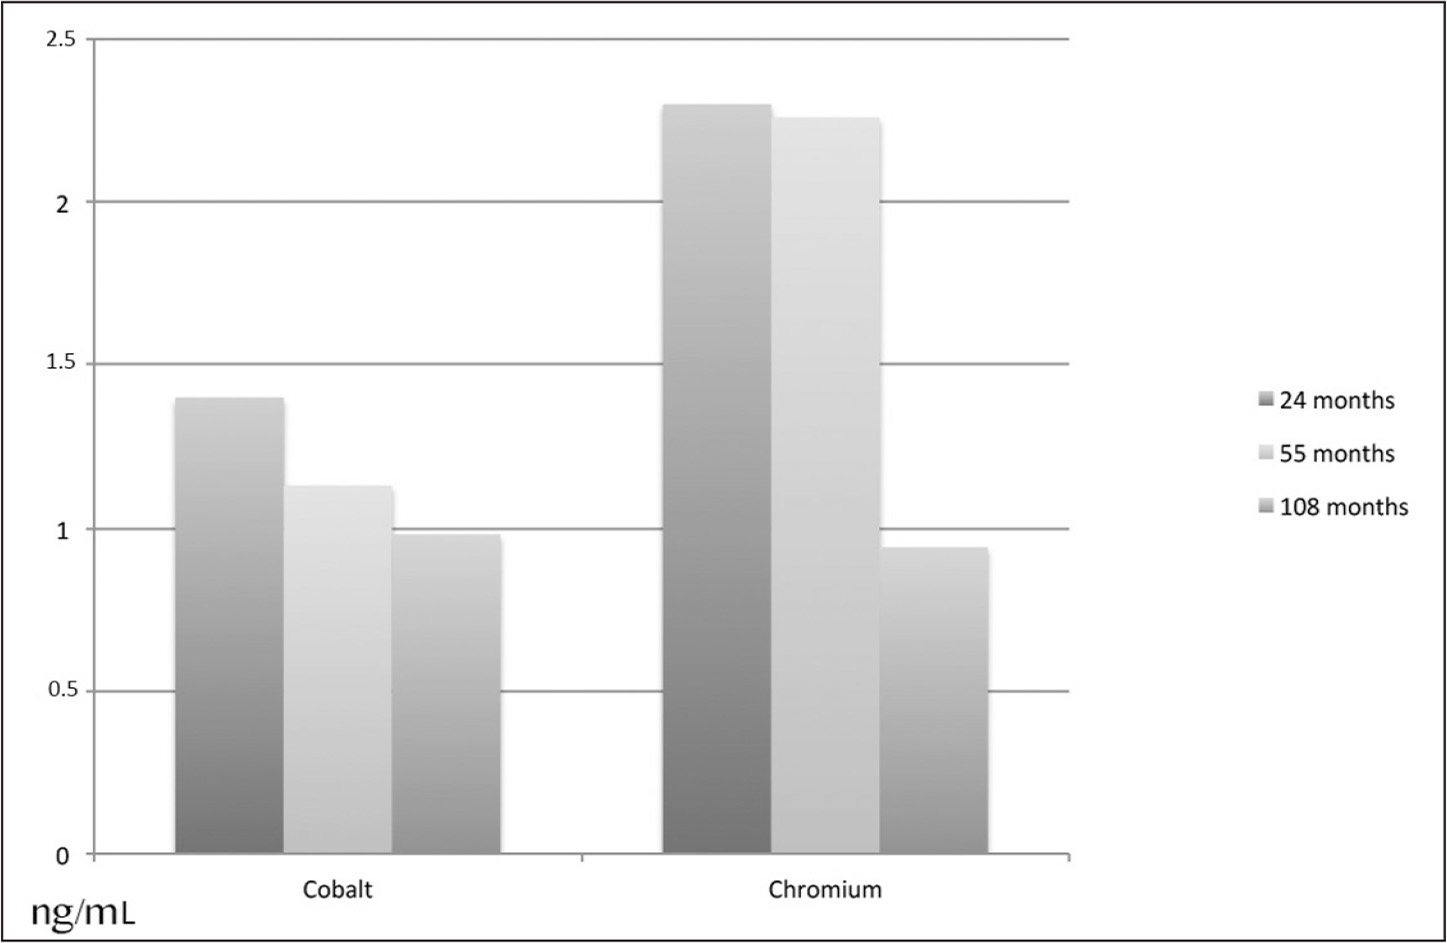 Diagram showing metal ion serum concentrations (ng/mL) of chromium and cobalt at 2-, 5-, and 9-year follow-up in a population of patients who underwent hip resurfacing.